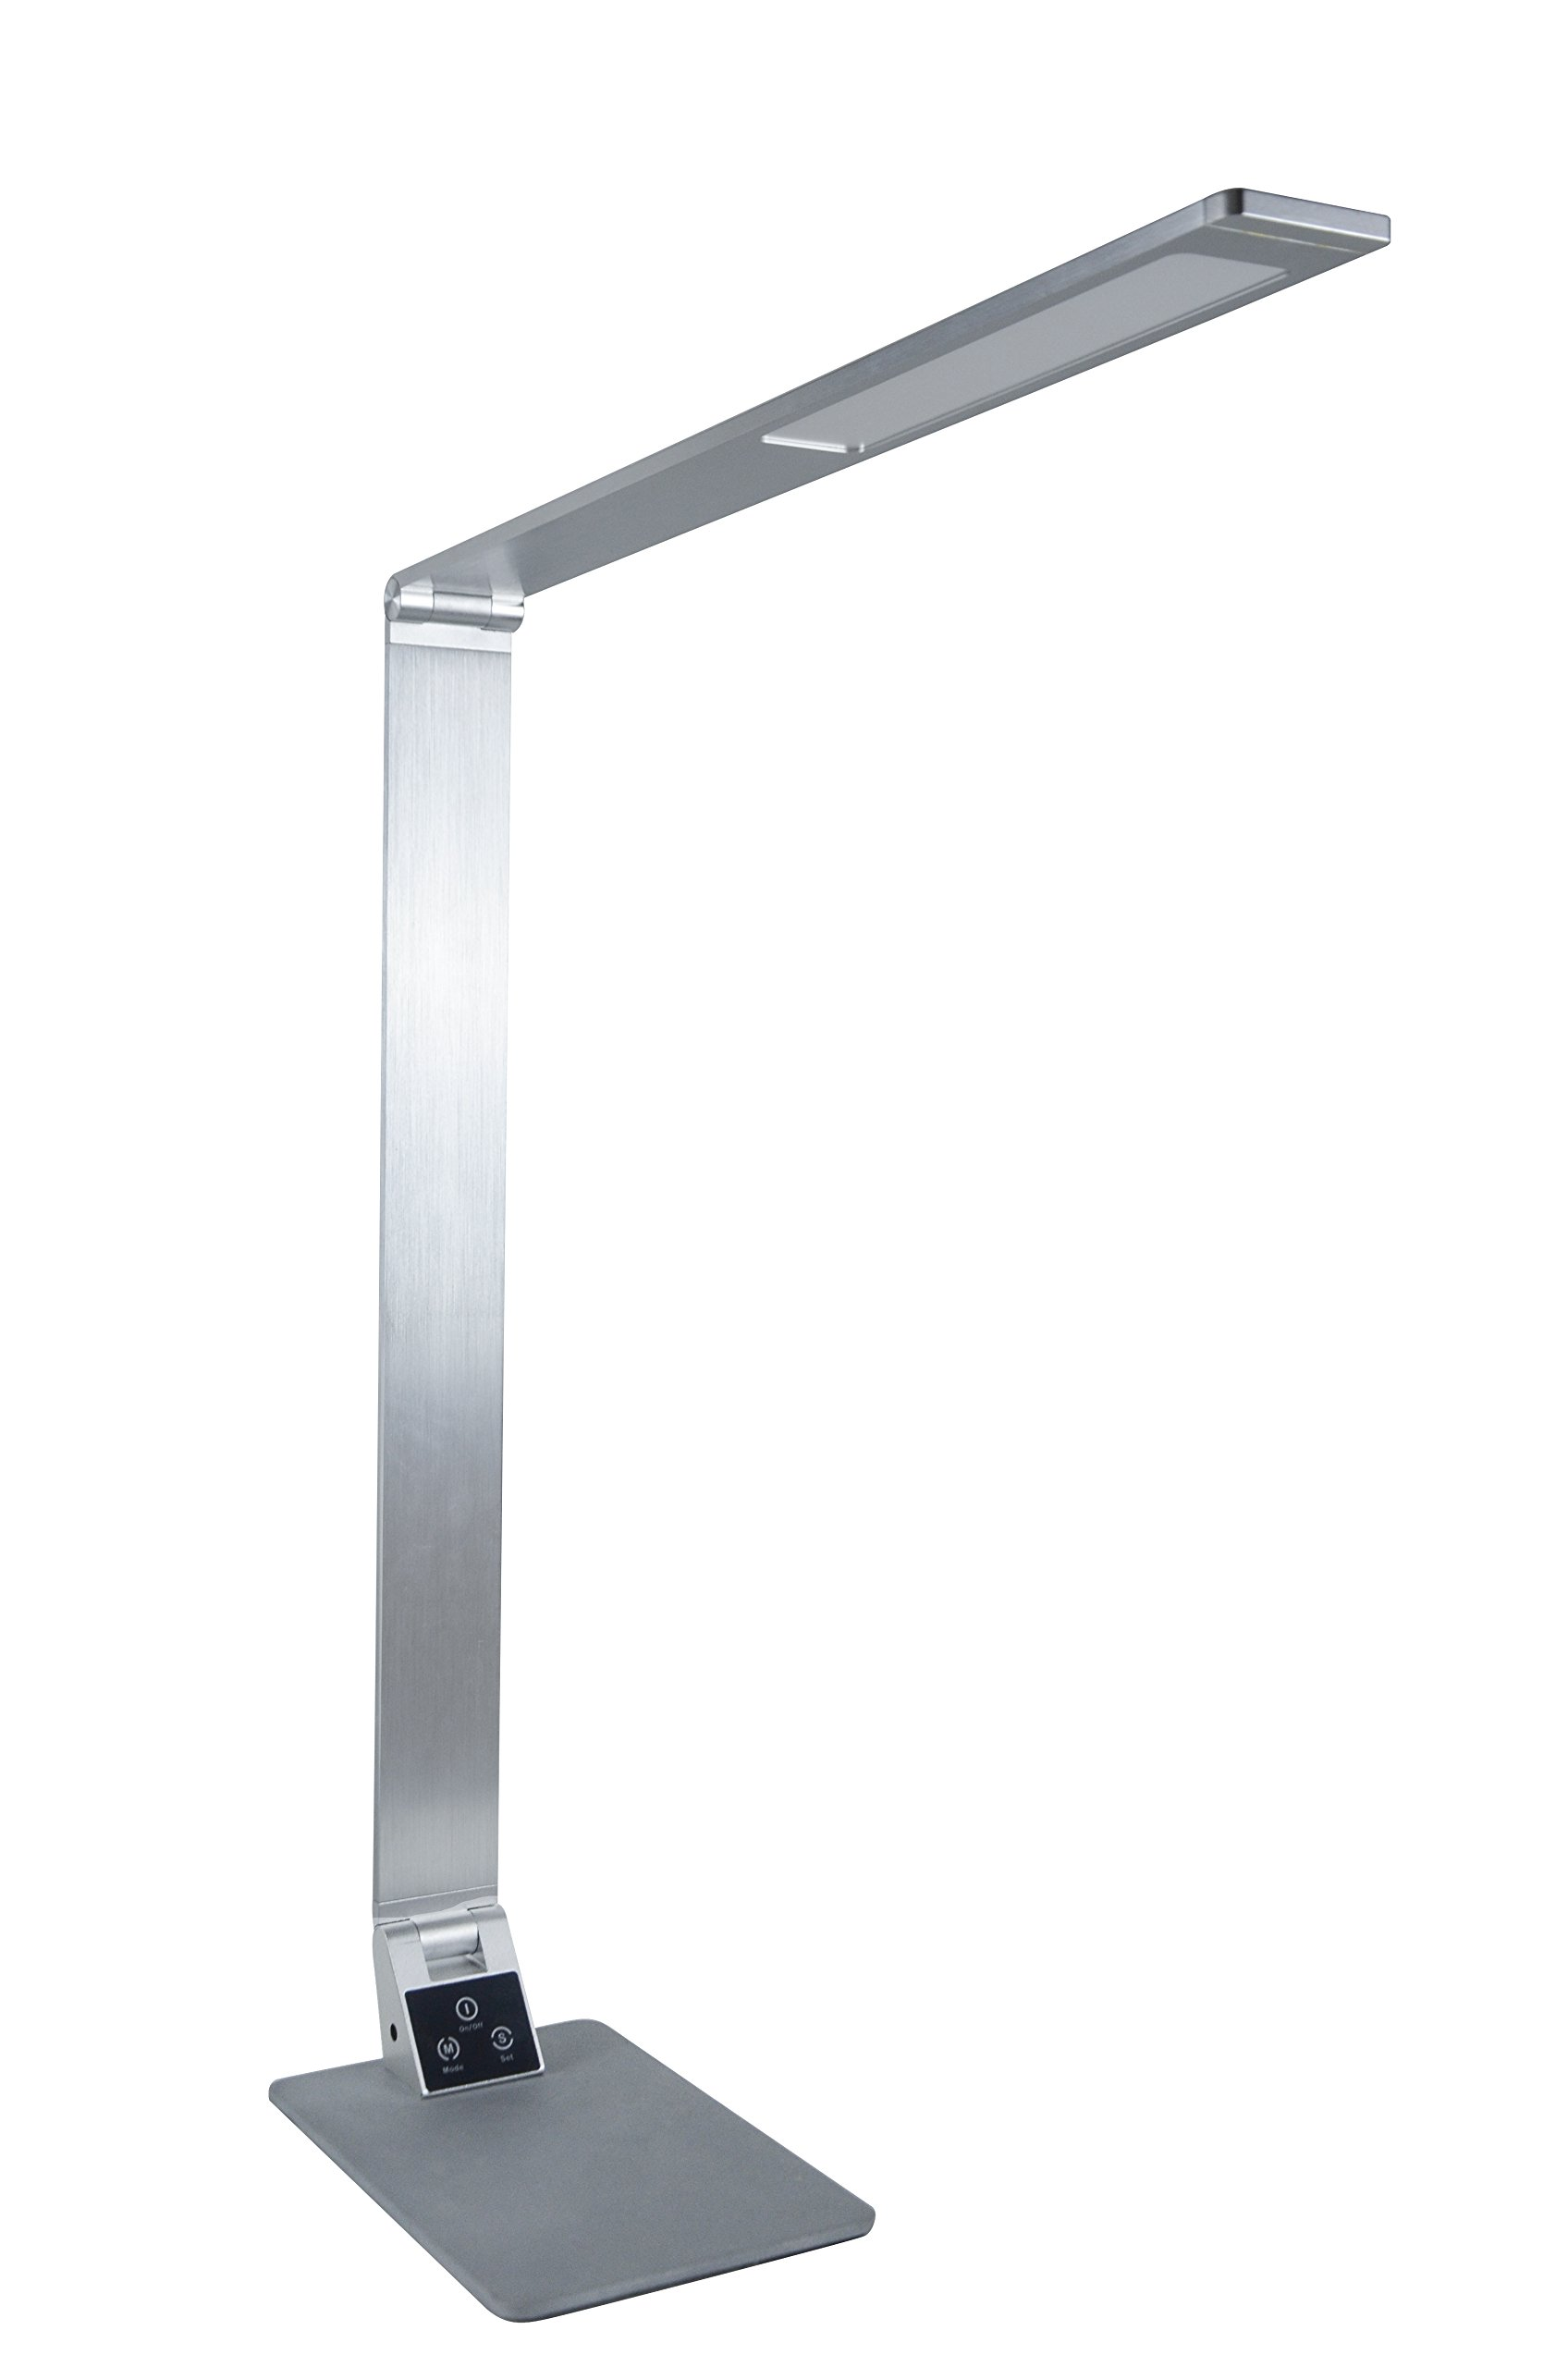 Zhuoxin Eye-protecting Table Desk Lamps, Dimmable Adjustable Office Home Lamp Touch Control, 5 Level Dimmer,3 Color Temperature,12W (Silver)